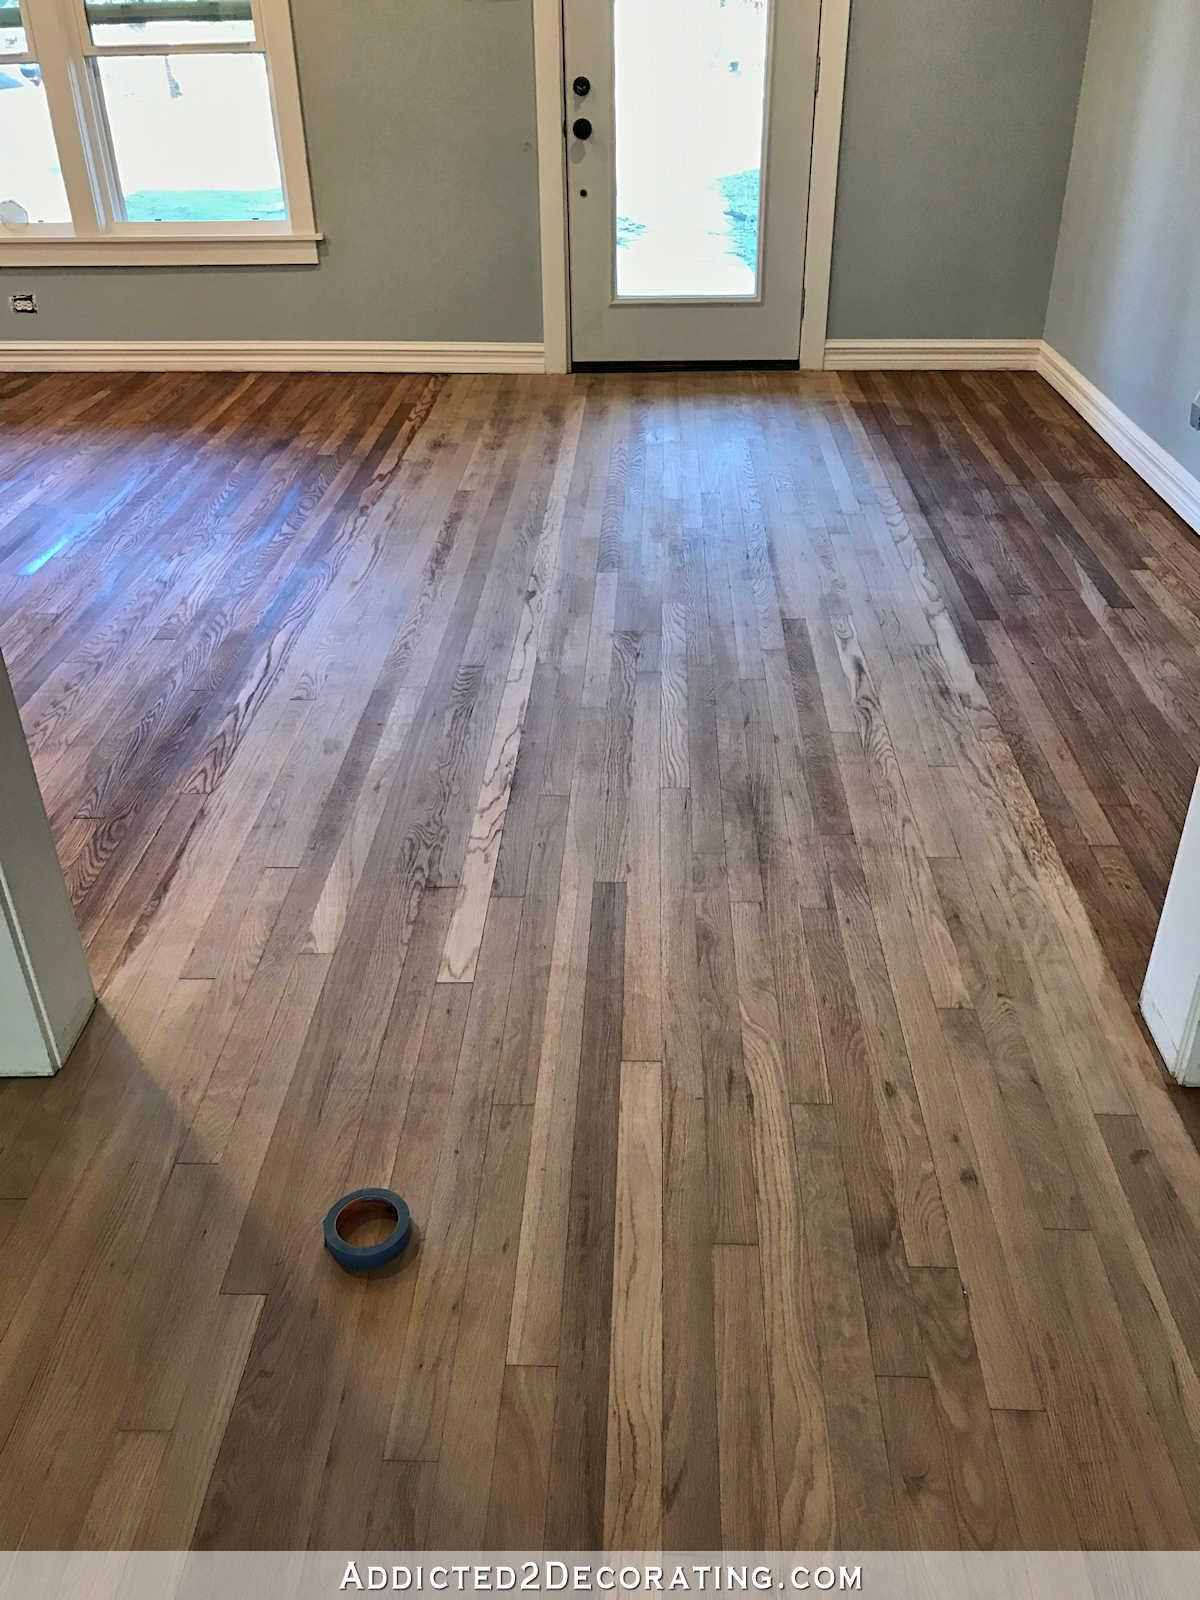 hardwood floor repair diy of luxury of diy wood floor refinishing collection intended for e of the earliest diy renovations we tackled at the totsreno farmhouse was refinishing old hardwood floors the house is 100 yrs old and was challenging